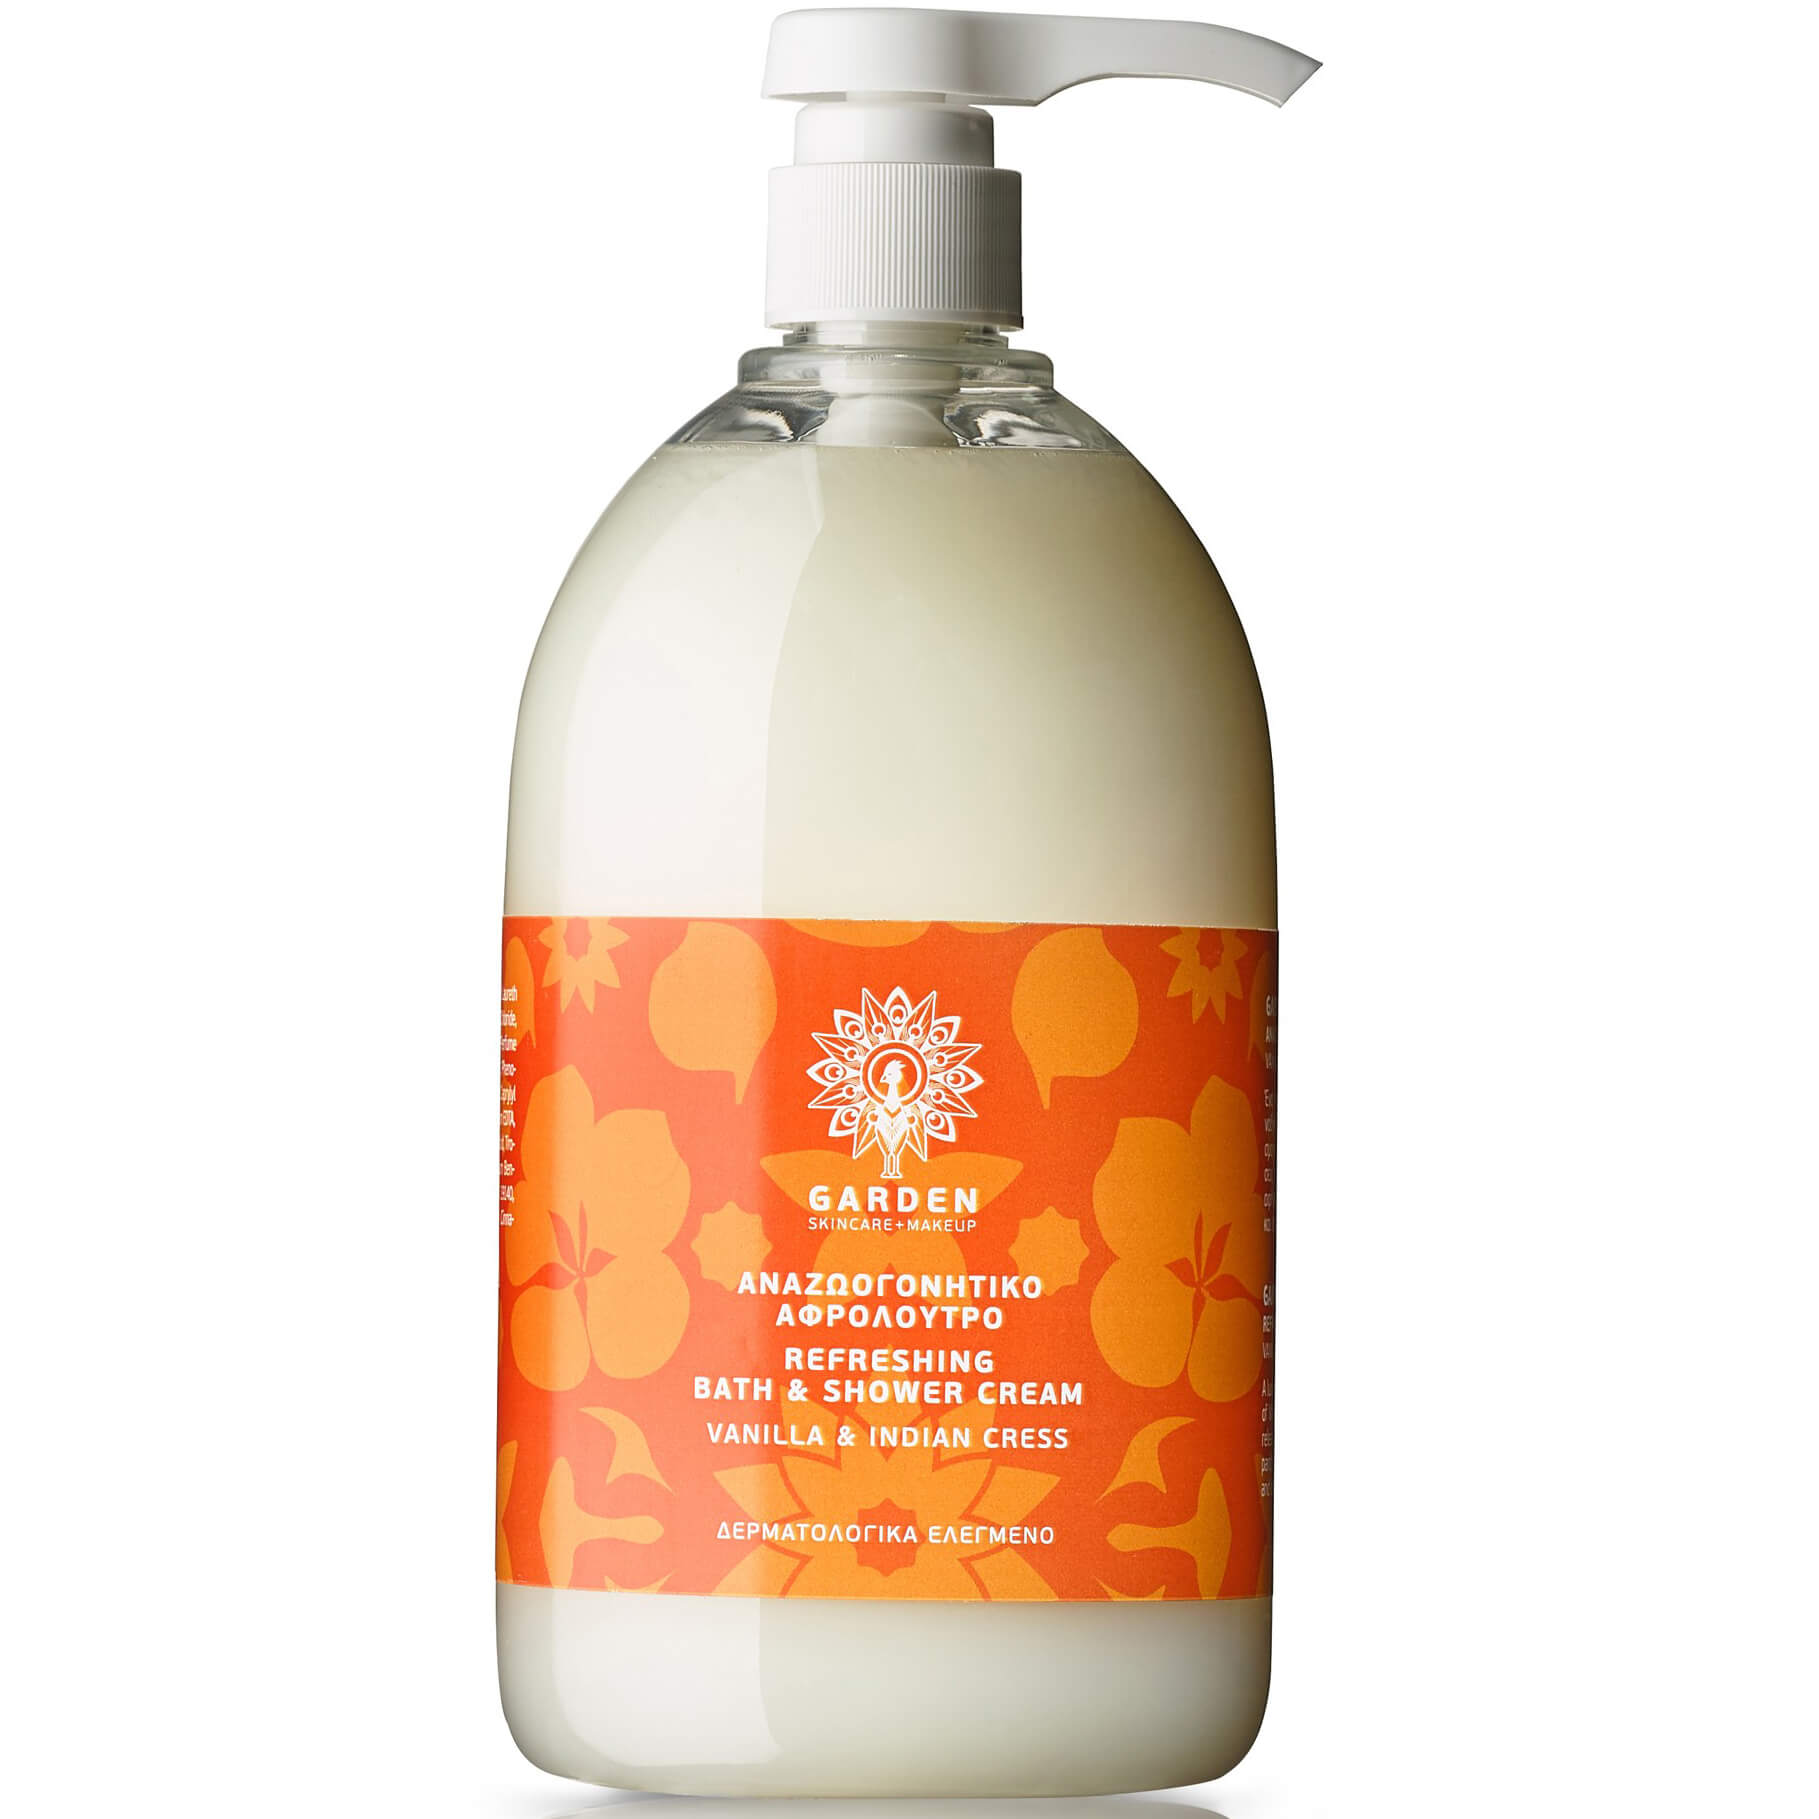 Garden of Panthenols Refreshing Bath & Shower Cream Vanilla & Indian Cress Αναζωογονητικό Αφρόλουτρο 1Lt